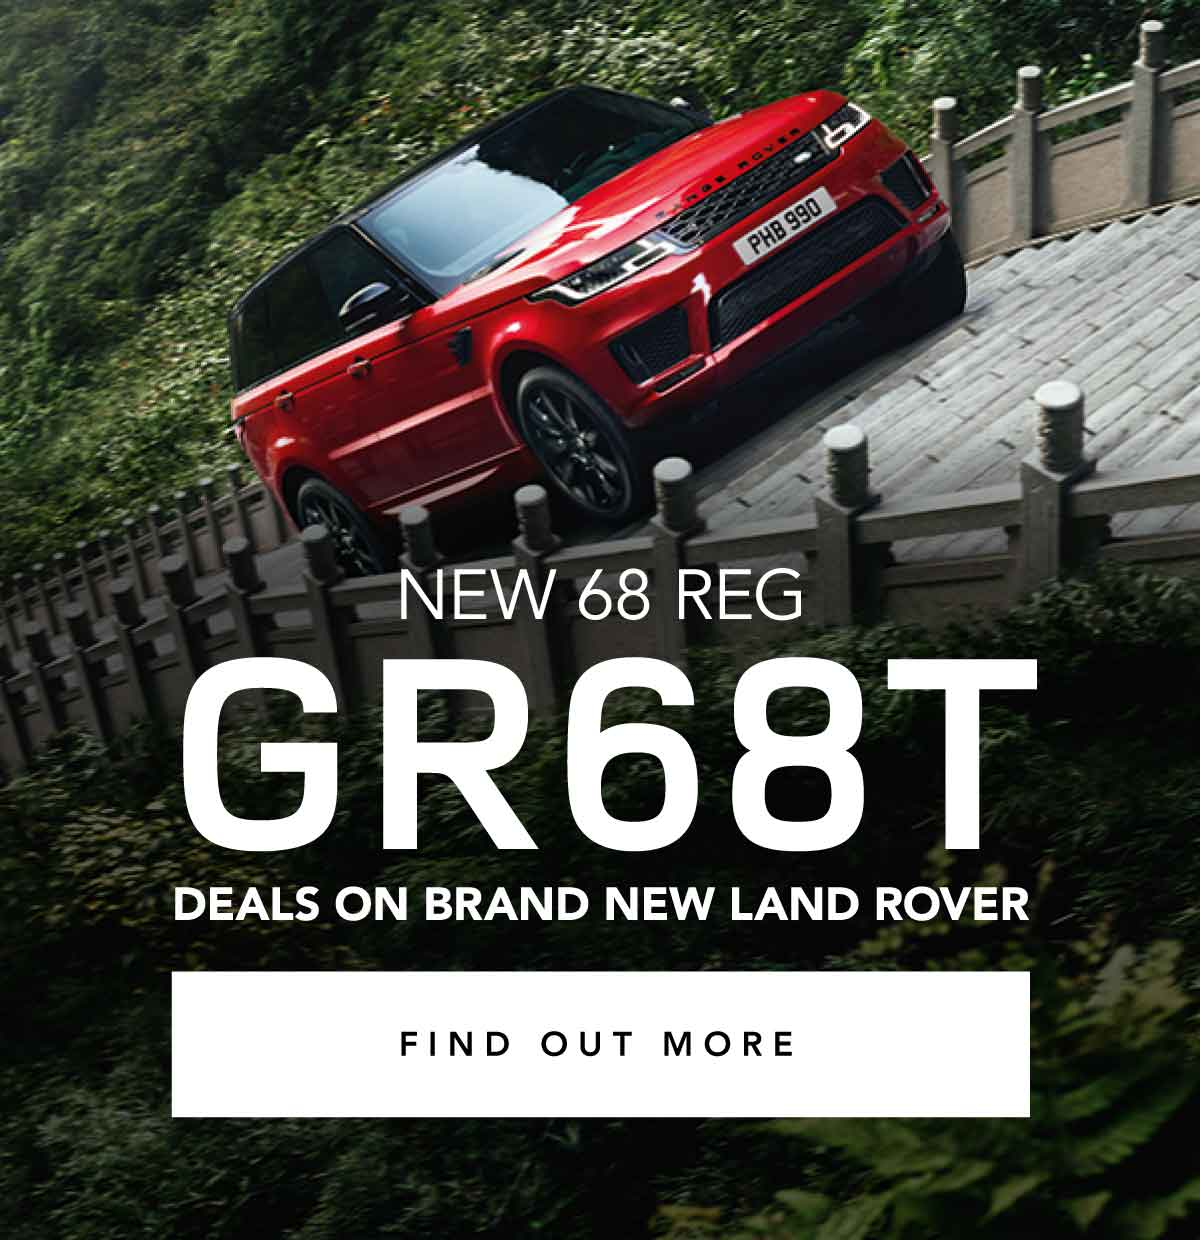 GR68T New Car August 2018 - Farnell Land Rover